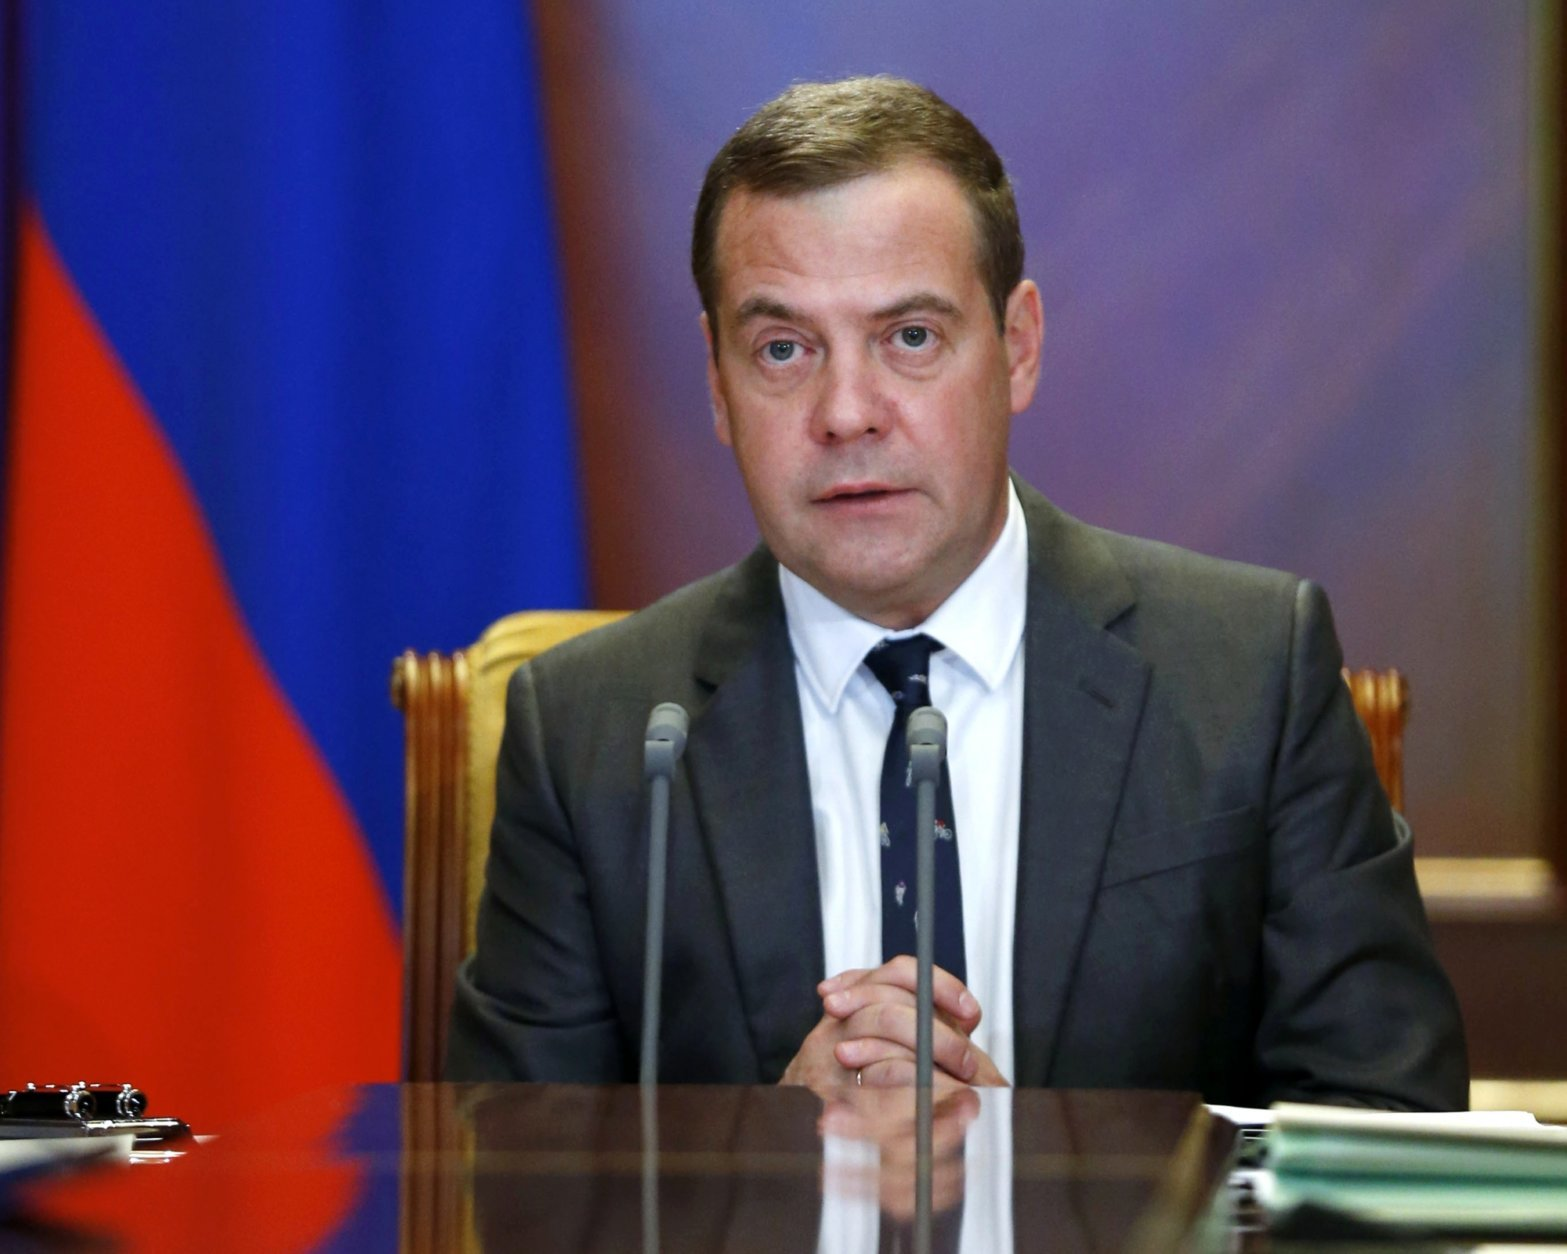 "Russian Prime Minister Dmitry Medvedev leads a cabinet meeting in the Gorky residence outside Moscow, Georgia, Wednesday, Aug. 29, 2018. Russian President Vladimir Putin said in a televised address Wednesday said without raising the retirement age Russia's pension system ""would crack and eventually collapse."" He offered concessions to the reform, saying that women's retirement age should increase from 55 to 60 years, lower than had proposed. (Dmitry Astakhov, Sputnik, Government Pool Photo via AP)"